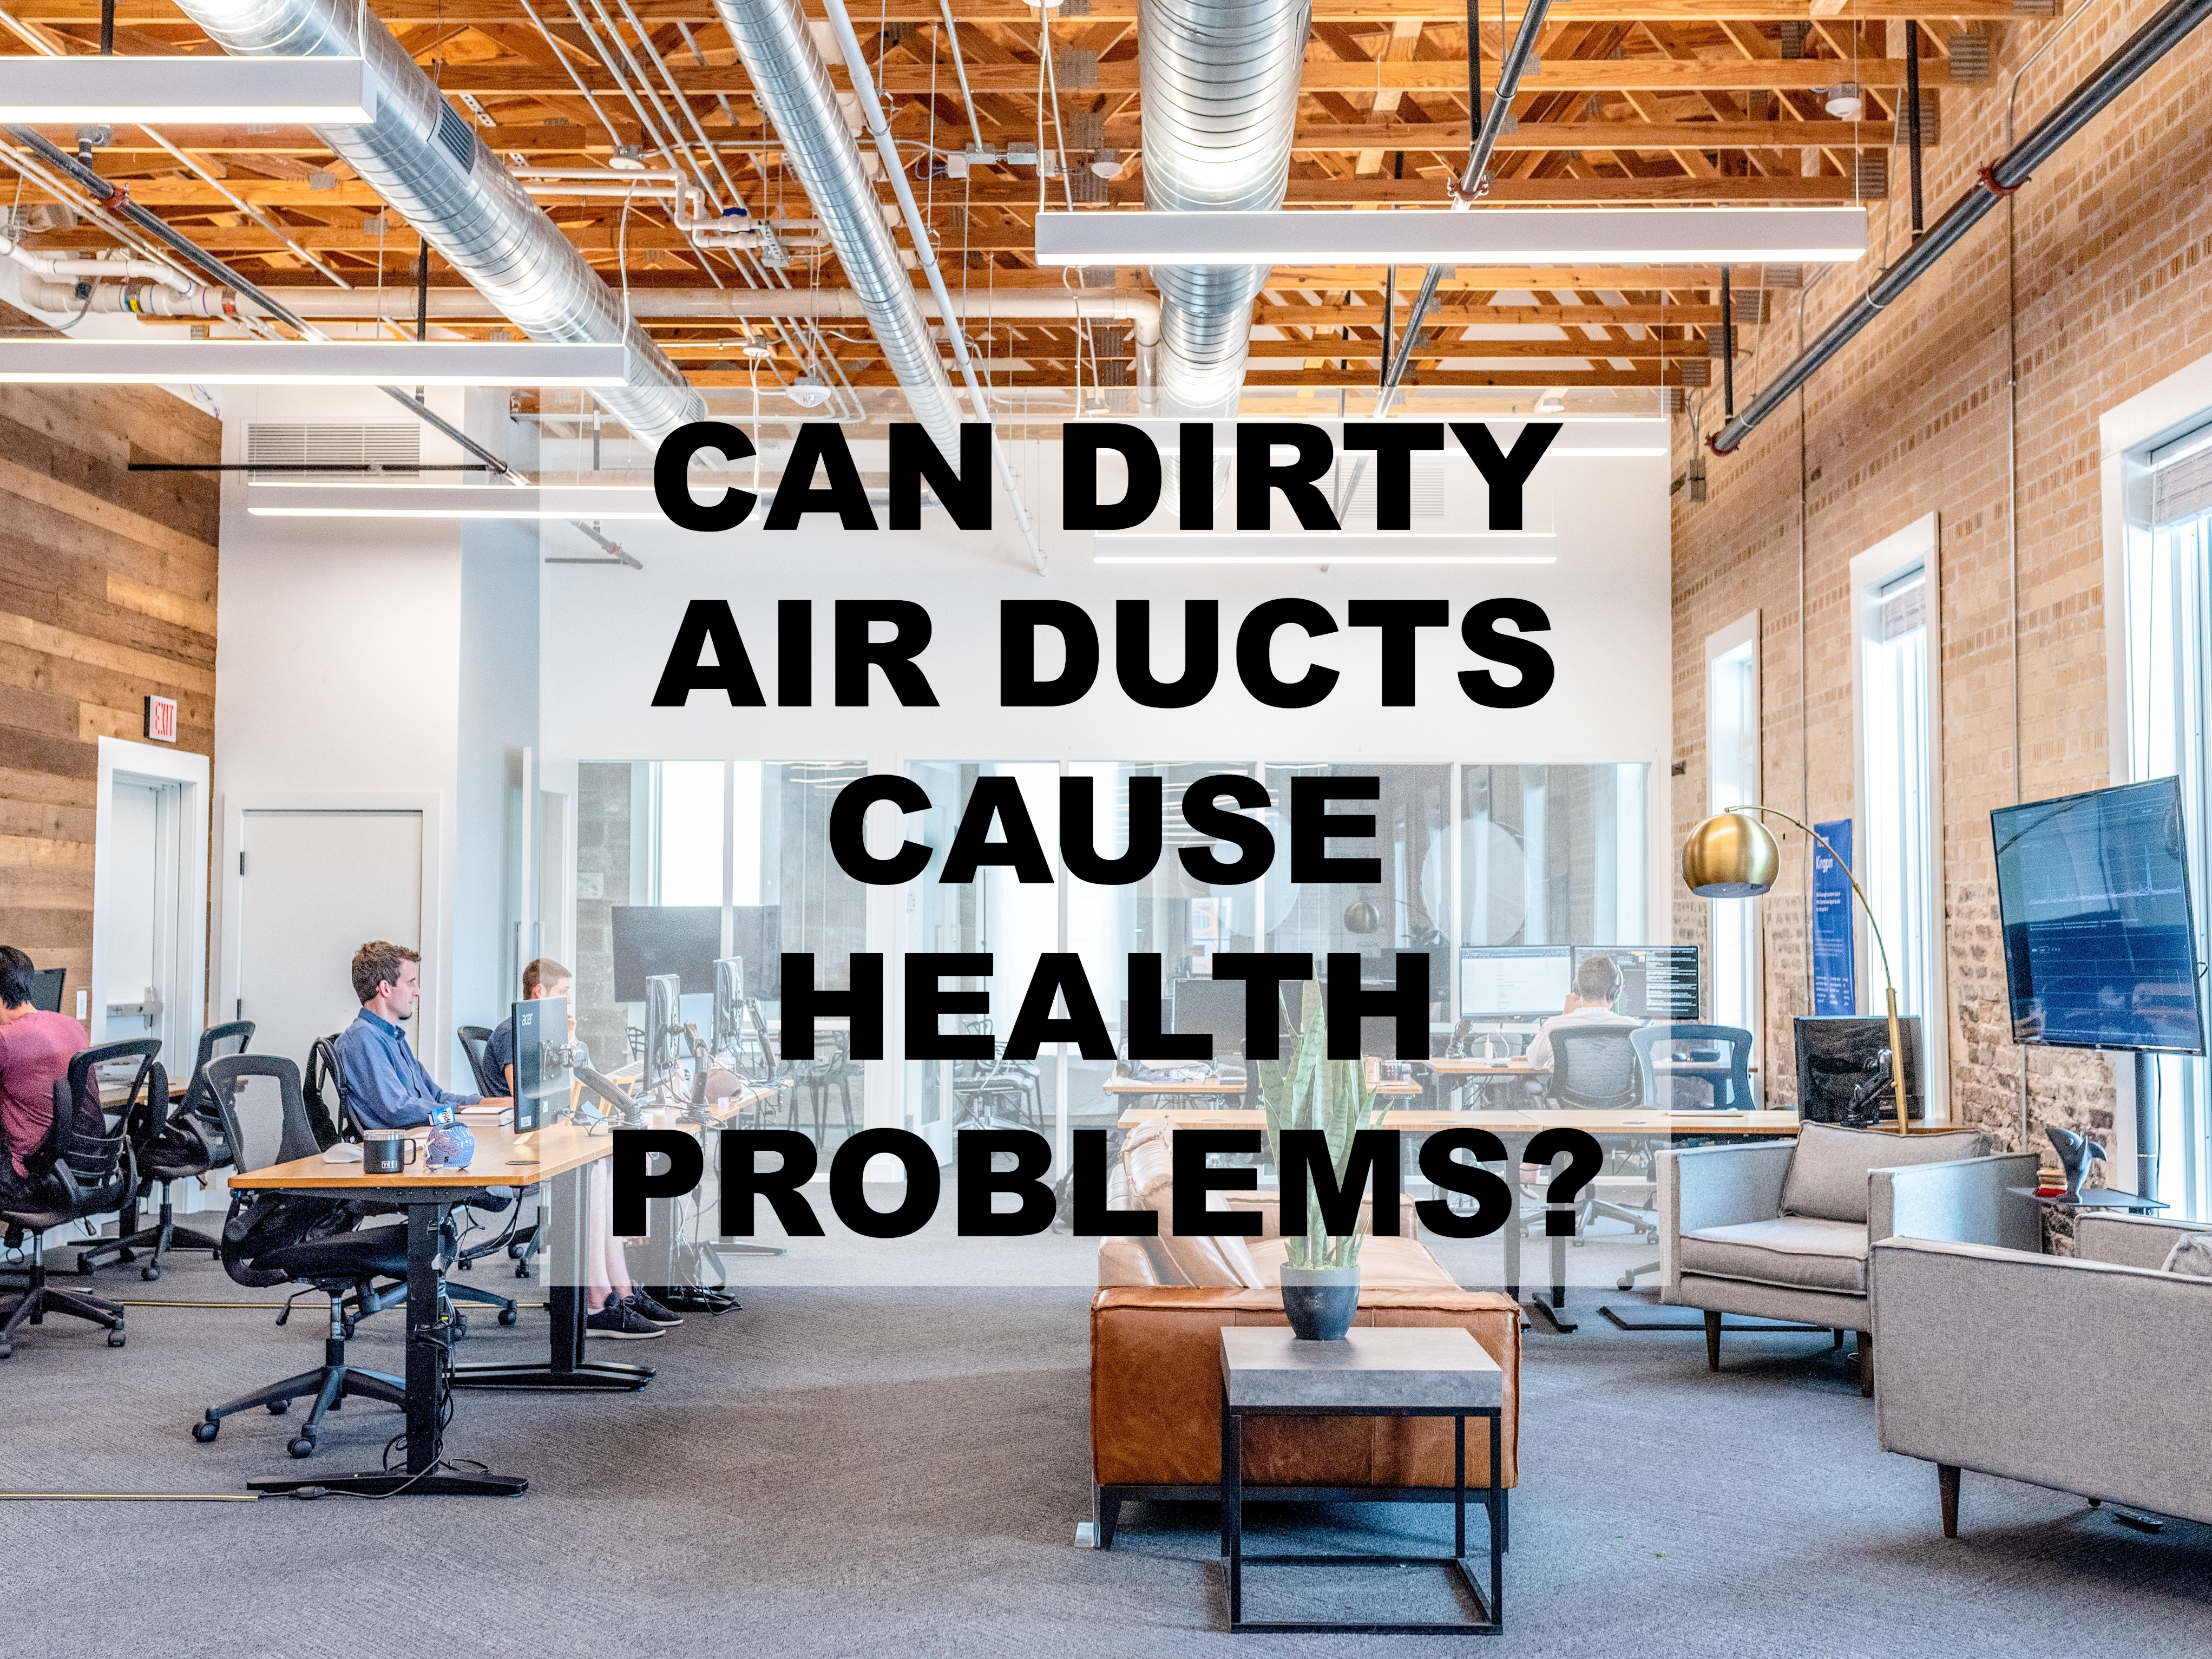 Can Dirty Air Ducts Cause Health Problems?